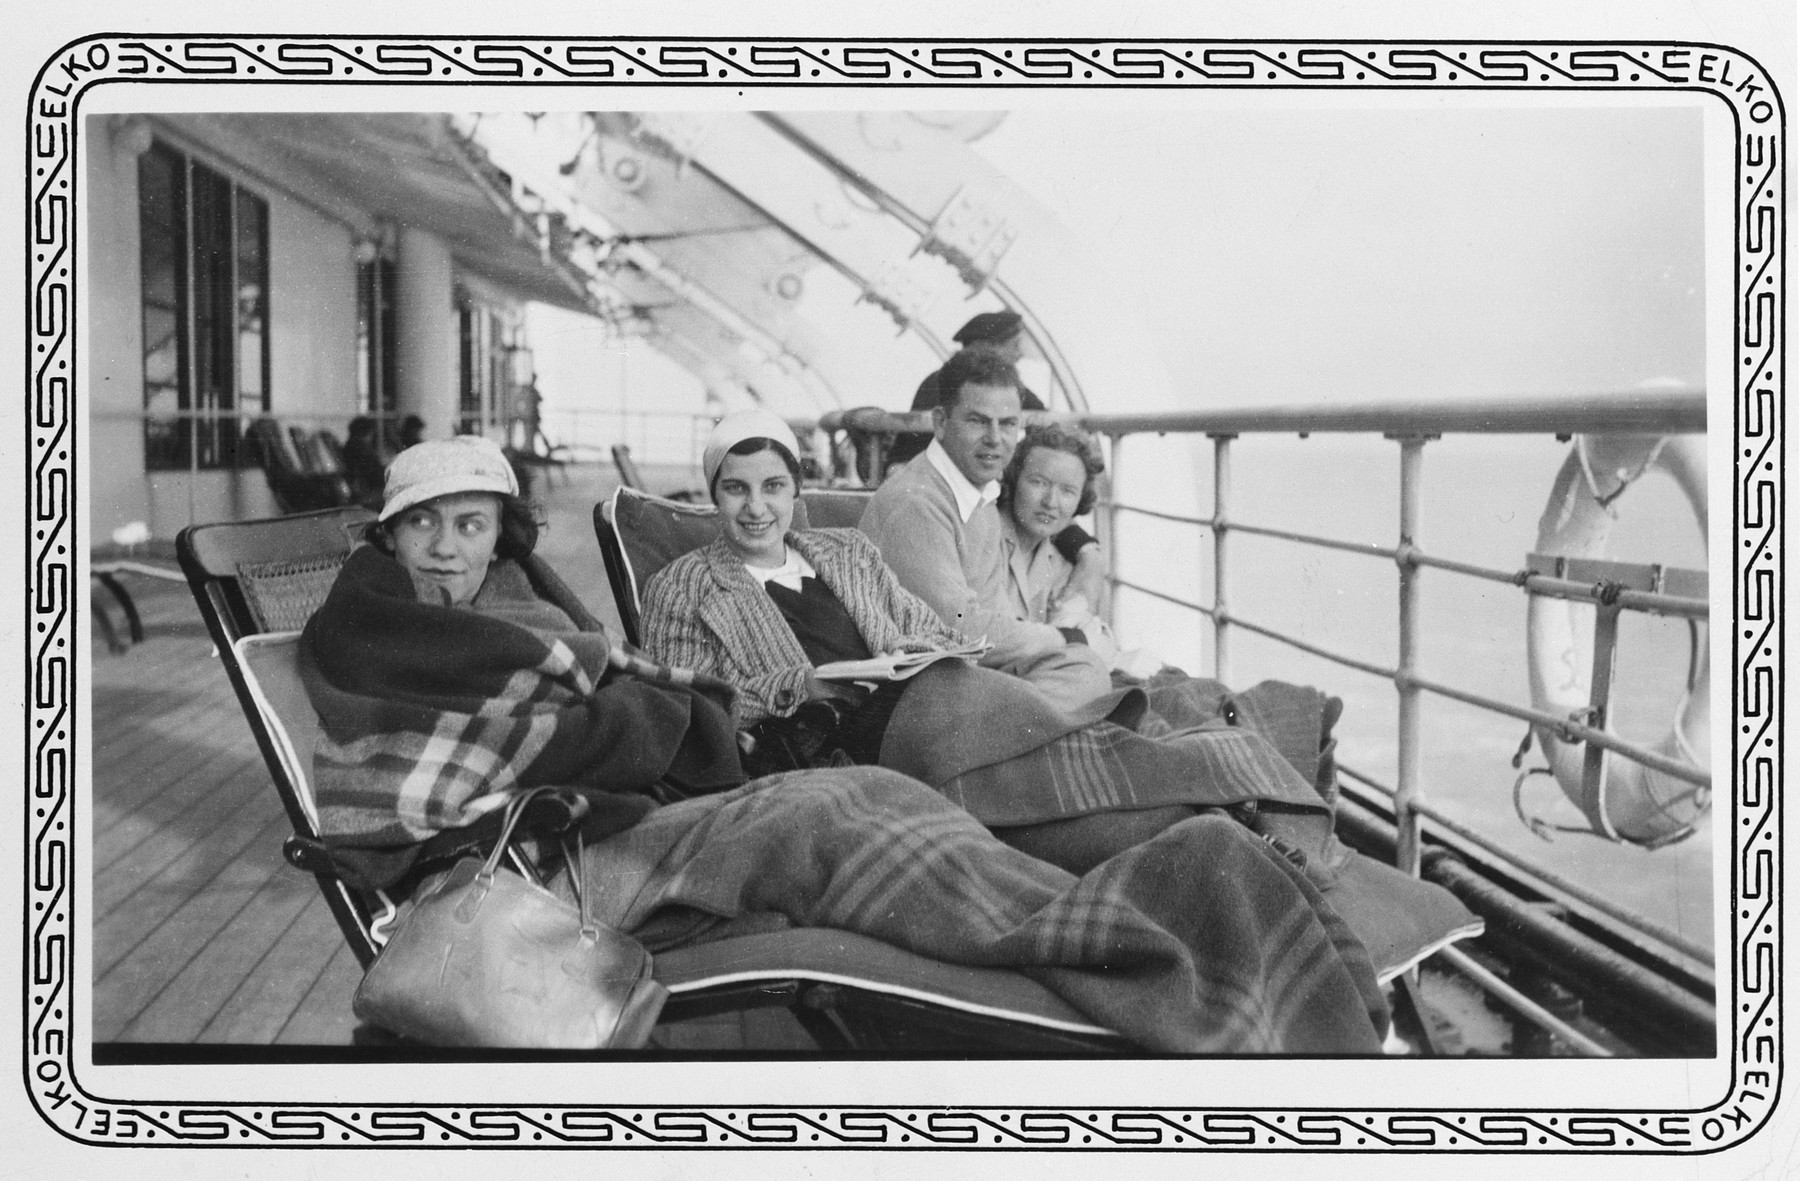 Passengers sit on the deck of the Lafayette during their voyage to the United States.  Among those pictured is Hildegard Wolff (second from left).